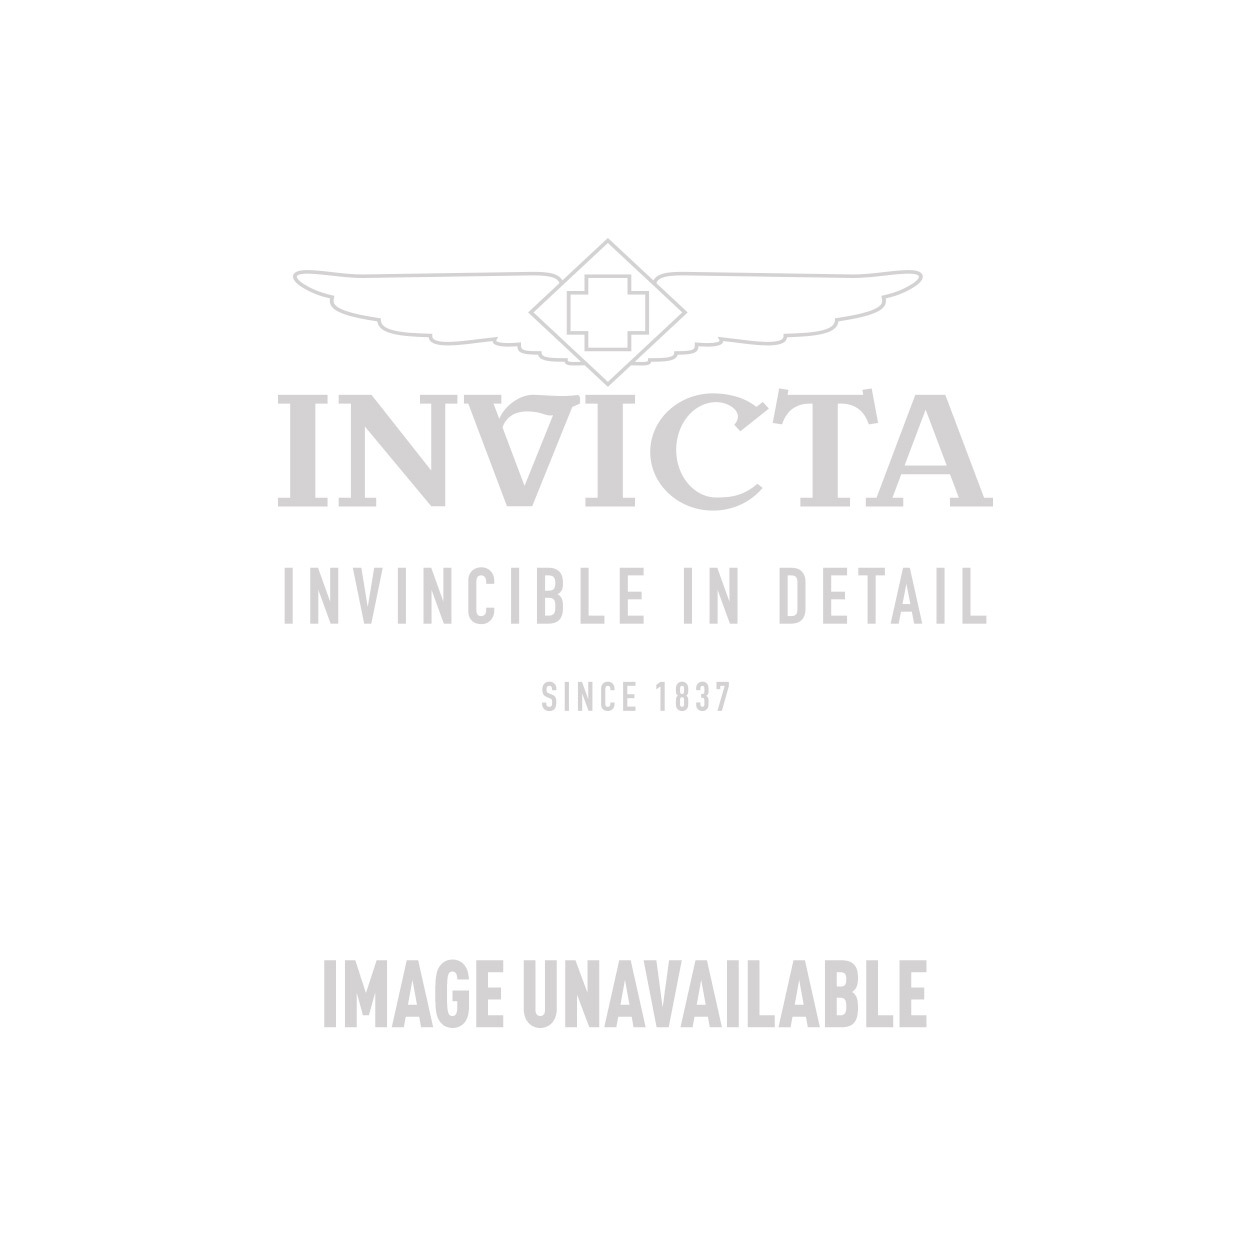 Invicta Specialty Swiss Movement Quartz Watch - Gold, Black case with Gold tone Stainless Steel band - Model 0392